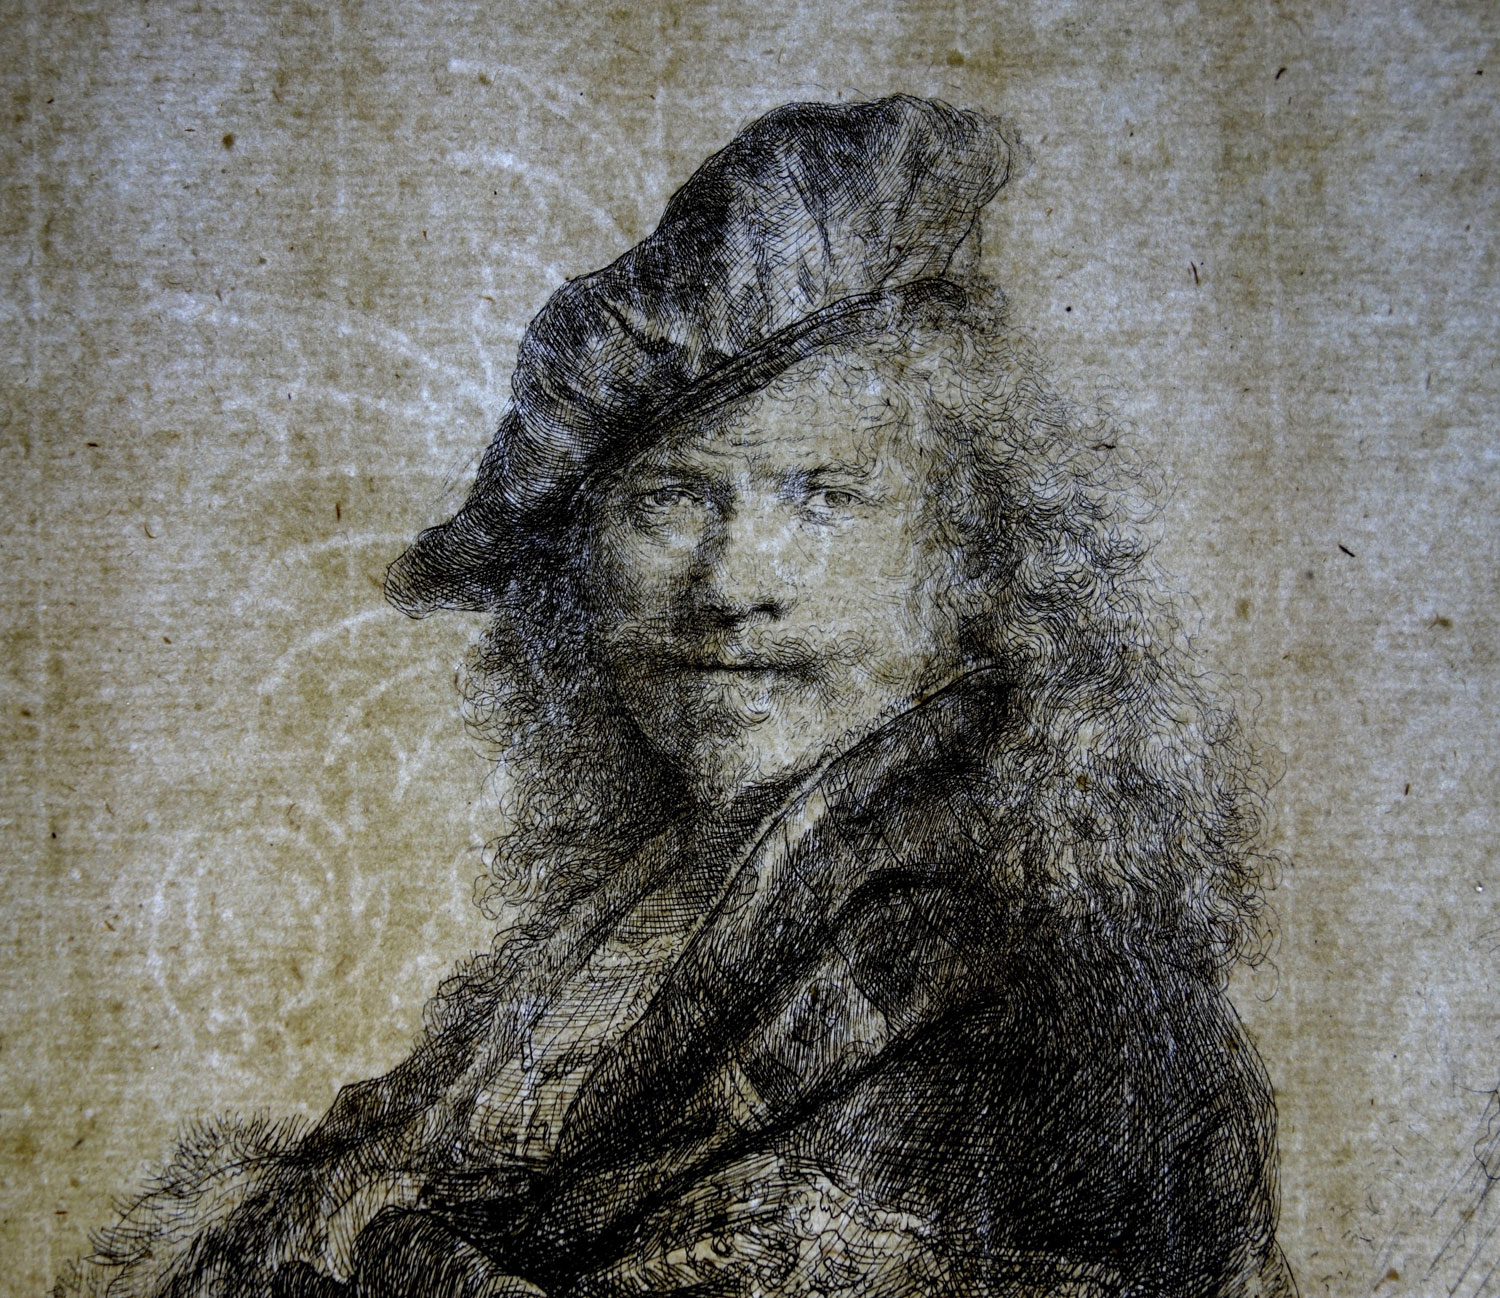 """Self-Portrait Leaning on a Stone Sill"" by Rembrandt Harmenszoon van Rijn, 1639; etching, with touches of drypoint, retouched in black chalk. Collection of Yale University Art Gallery. Transmitted light photograph courtesy of Theresa Fairbanks-Harris. Image courtesy of the Allen Memorial Art Museum."